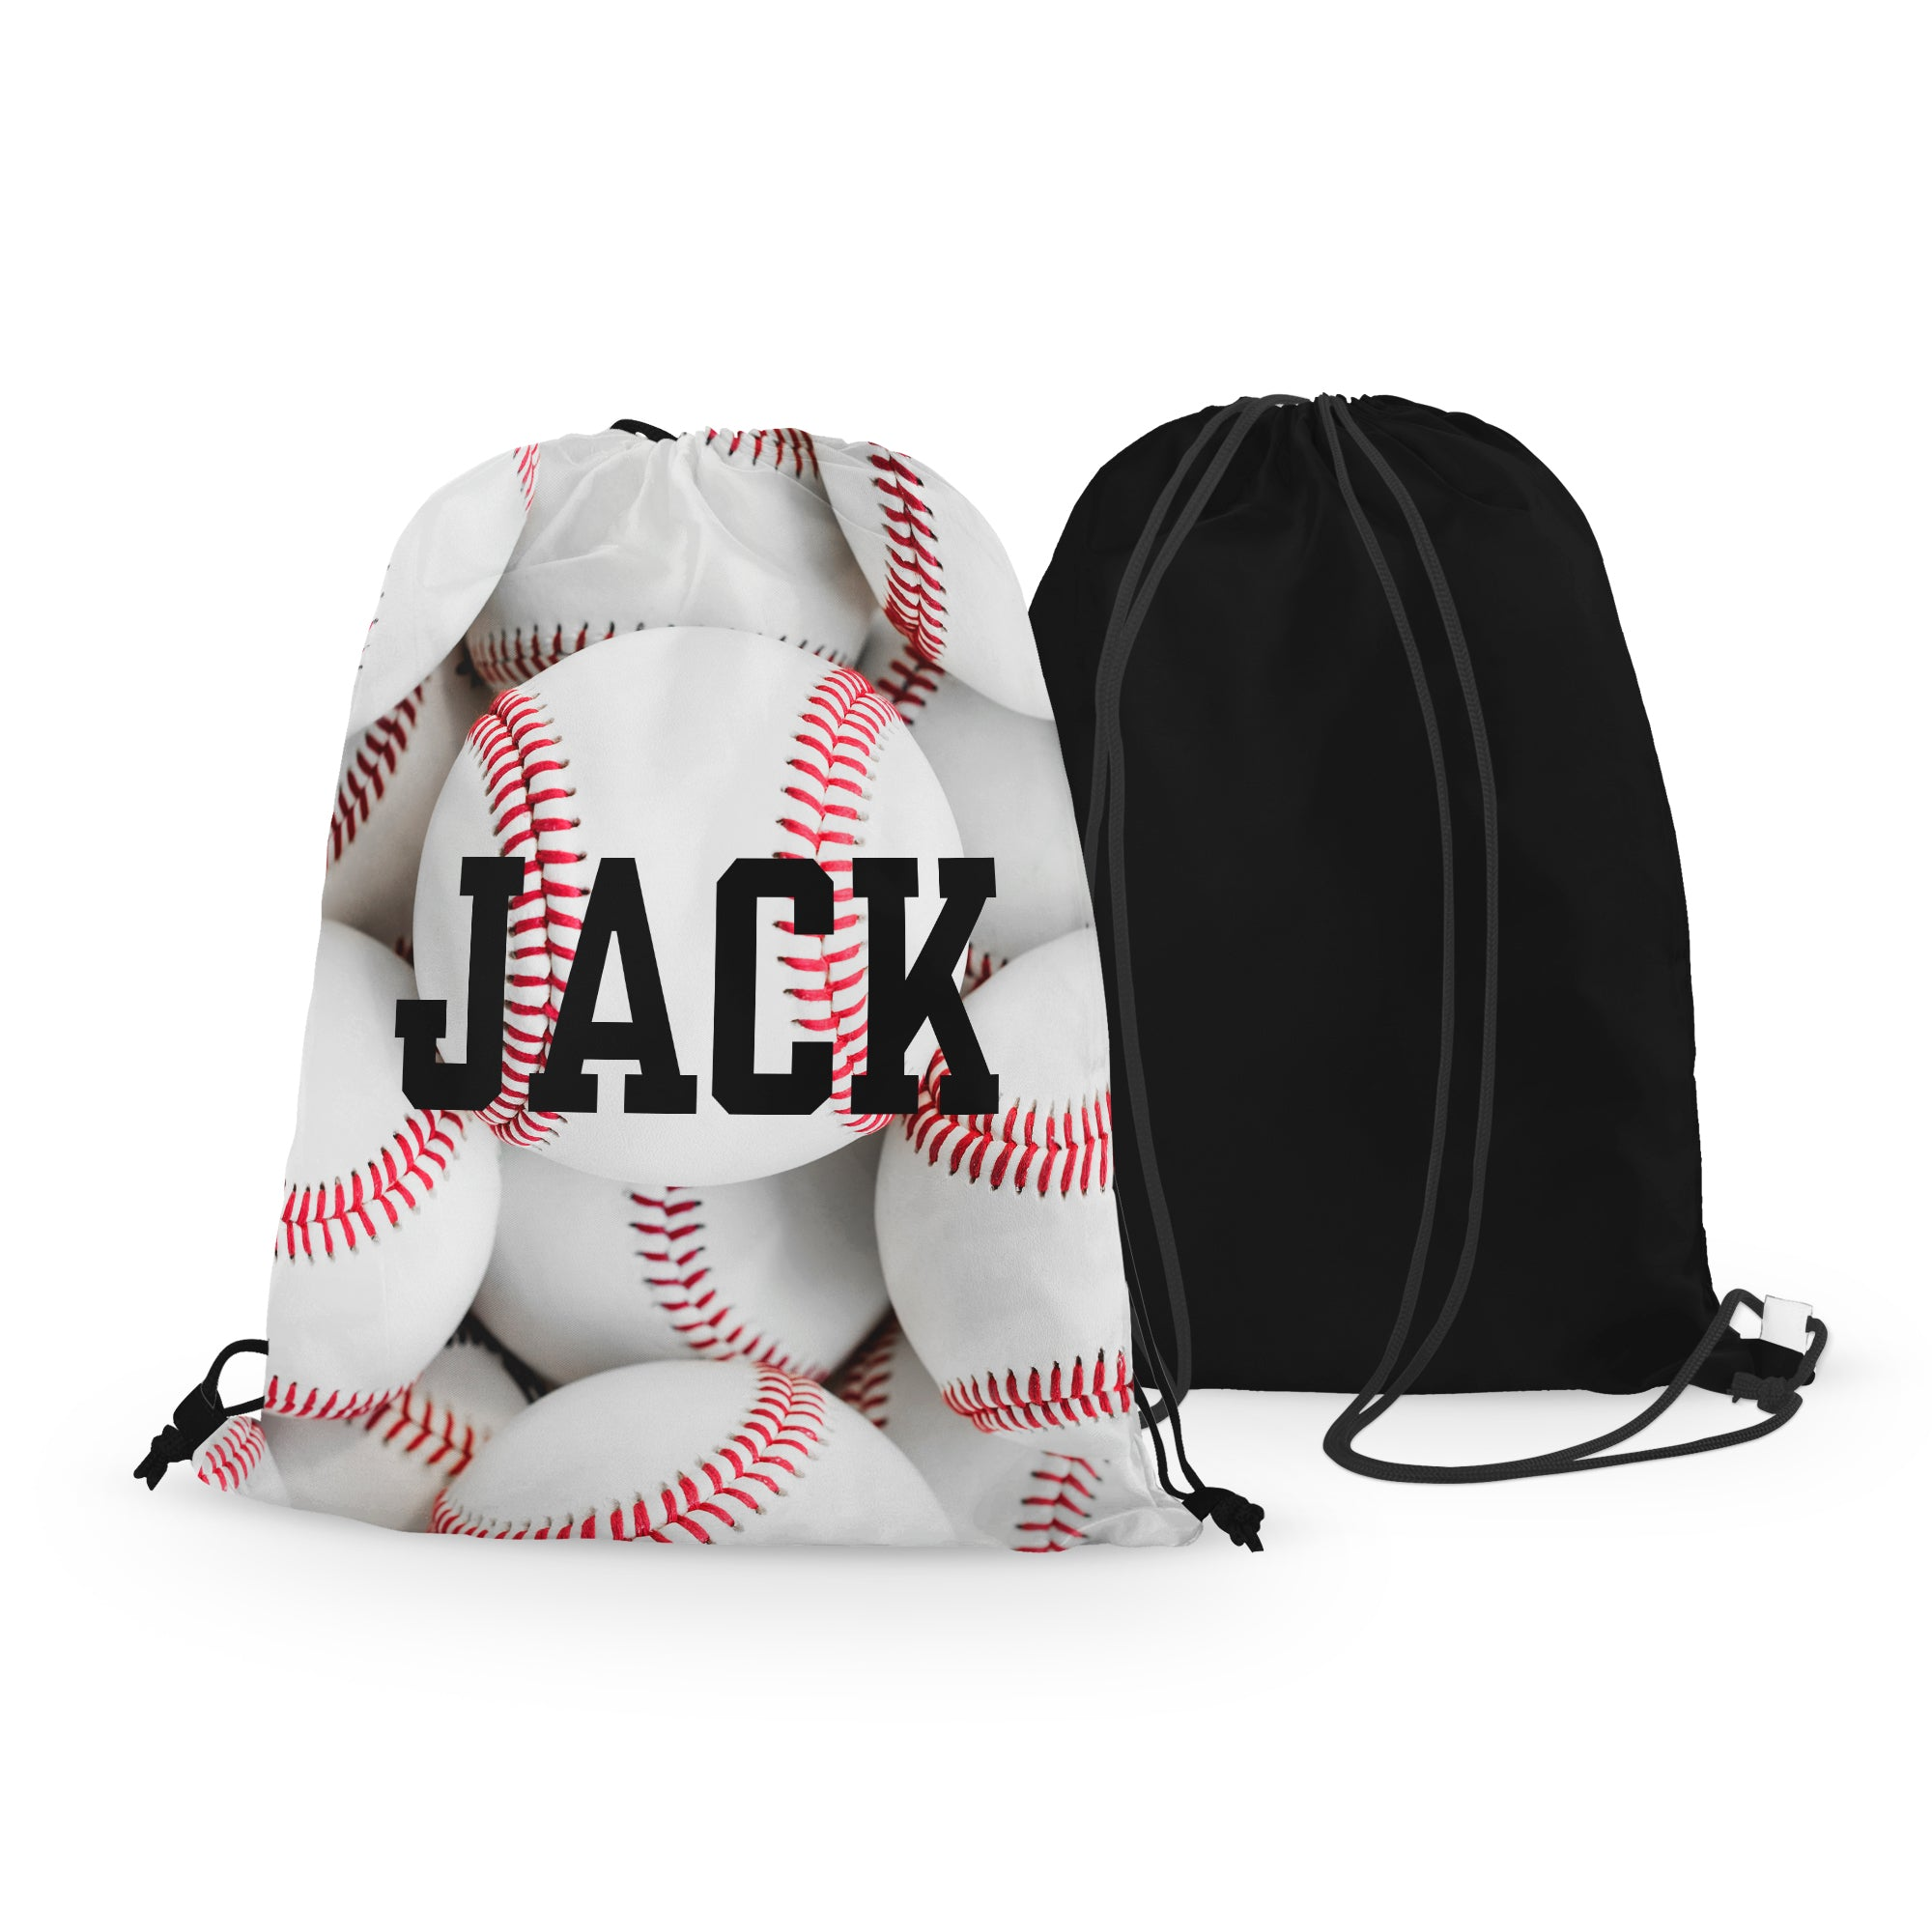 Personalized Baseball Drawstring Bag - Full Baseballs